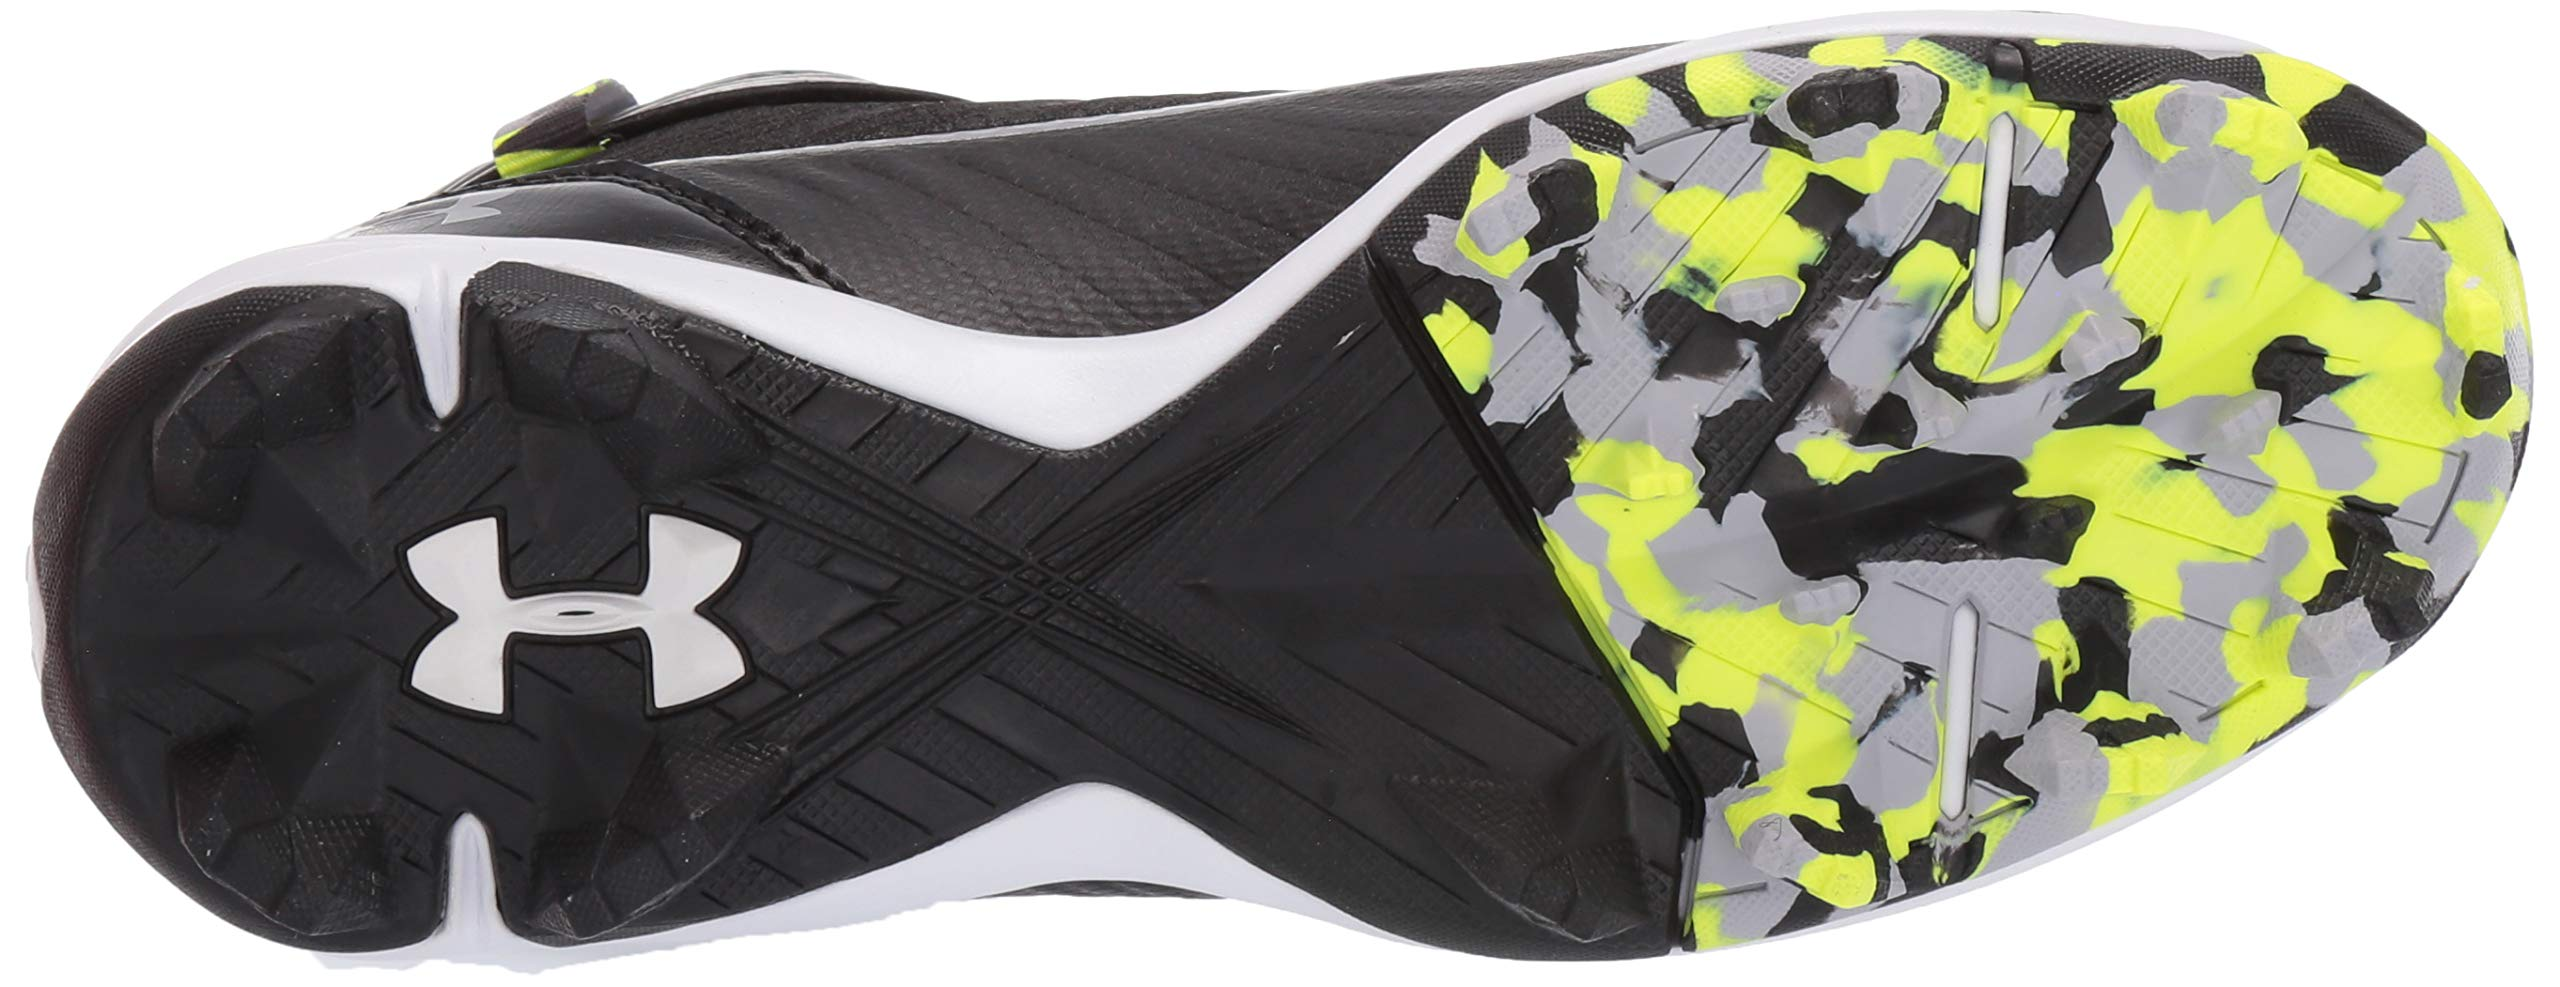 Under Armour Boys' Harper 3 Mid Jr. RM Baseball Shoe Black (001)/White 1.5 by Under Armour (Image #3)